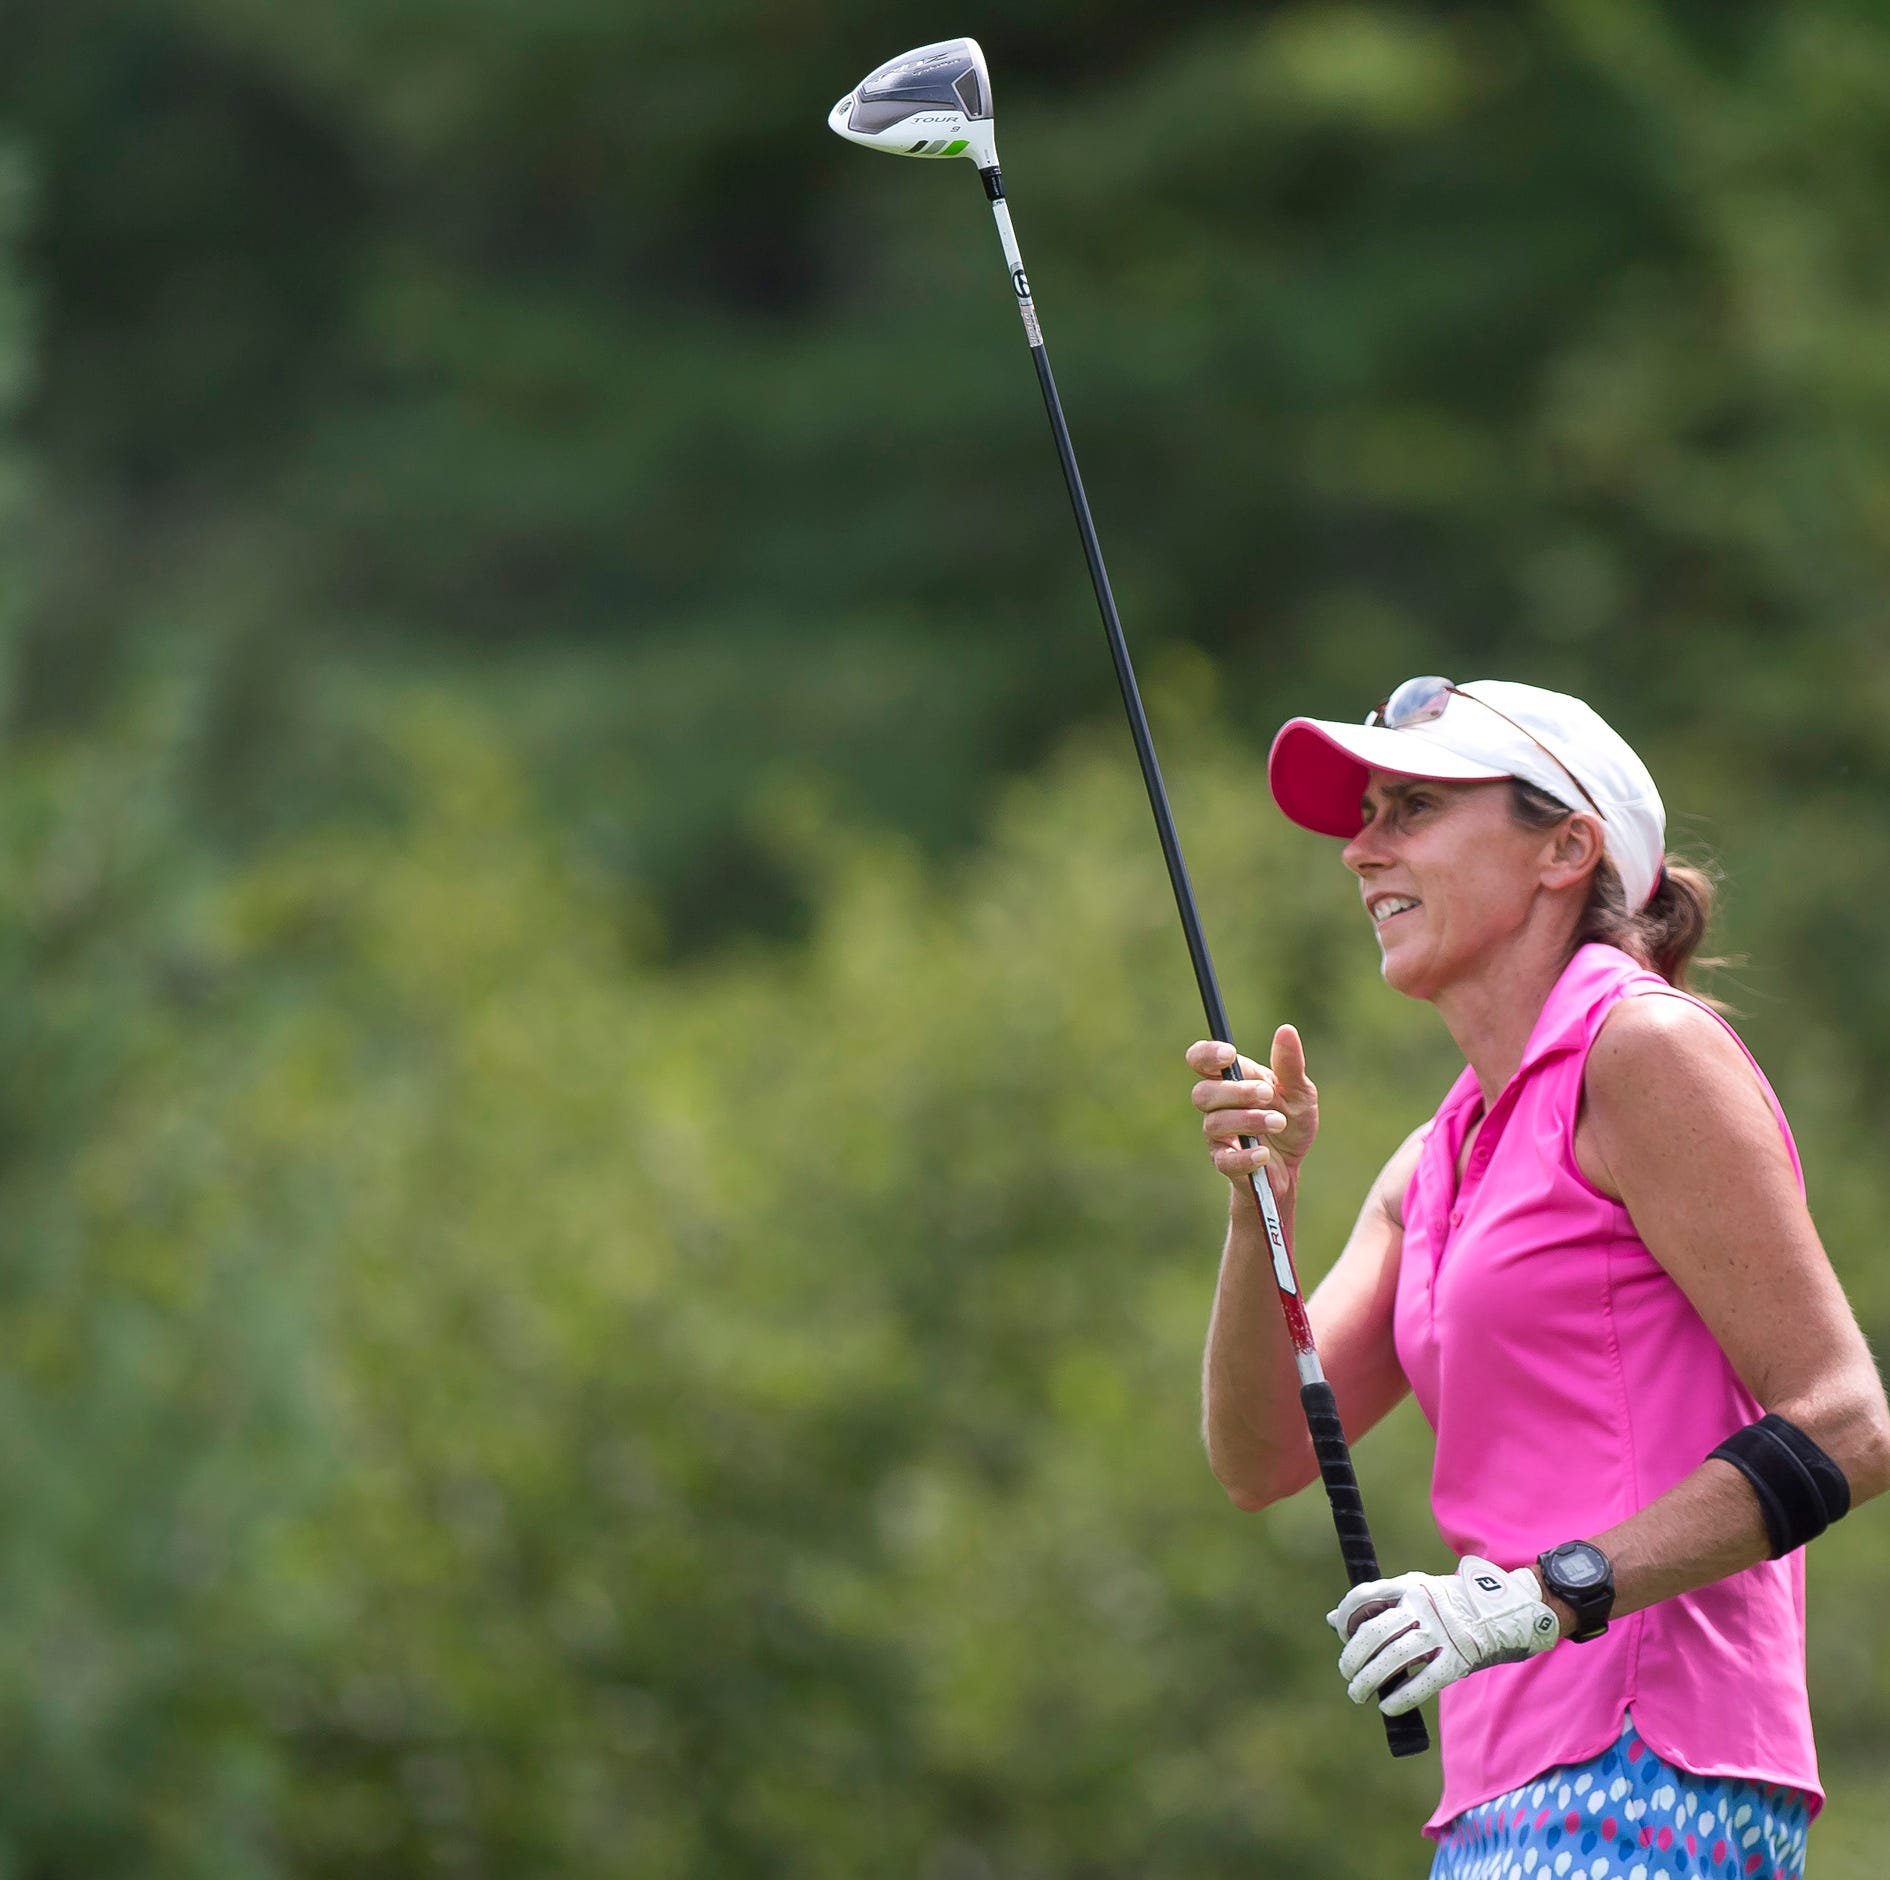 Tiffany Maurycy rallies to win 2018 Vermont women's amateur